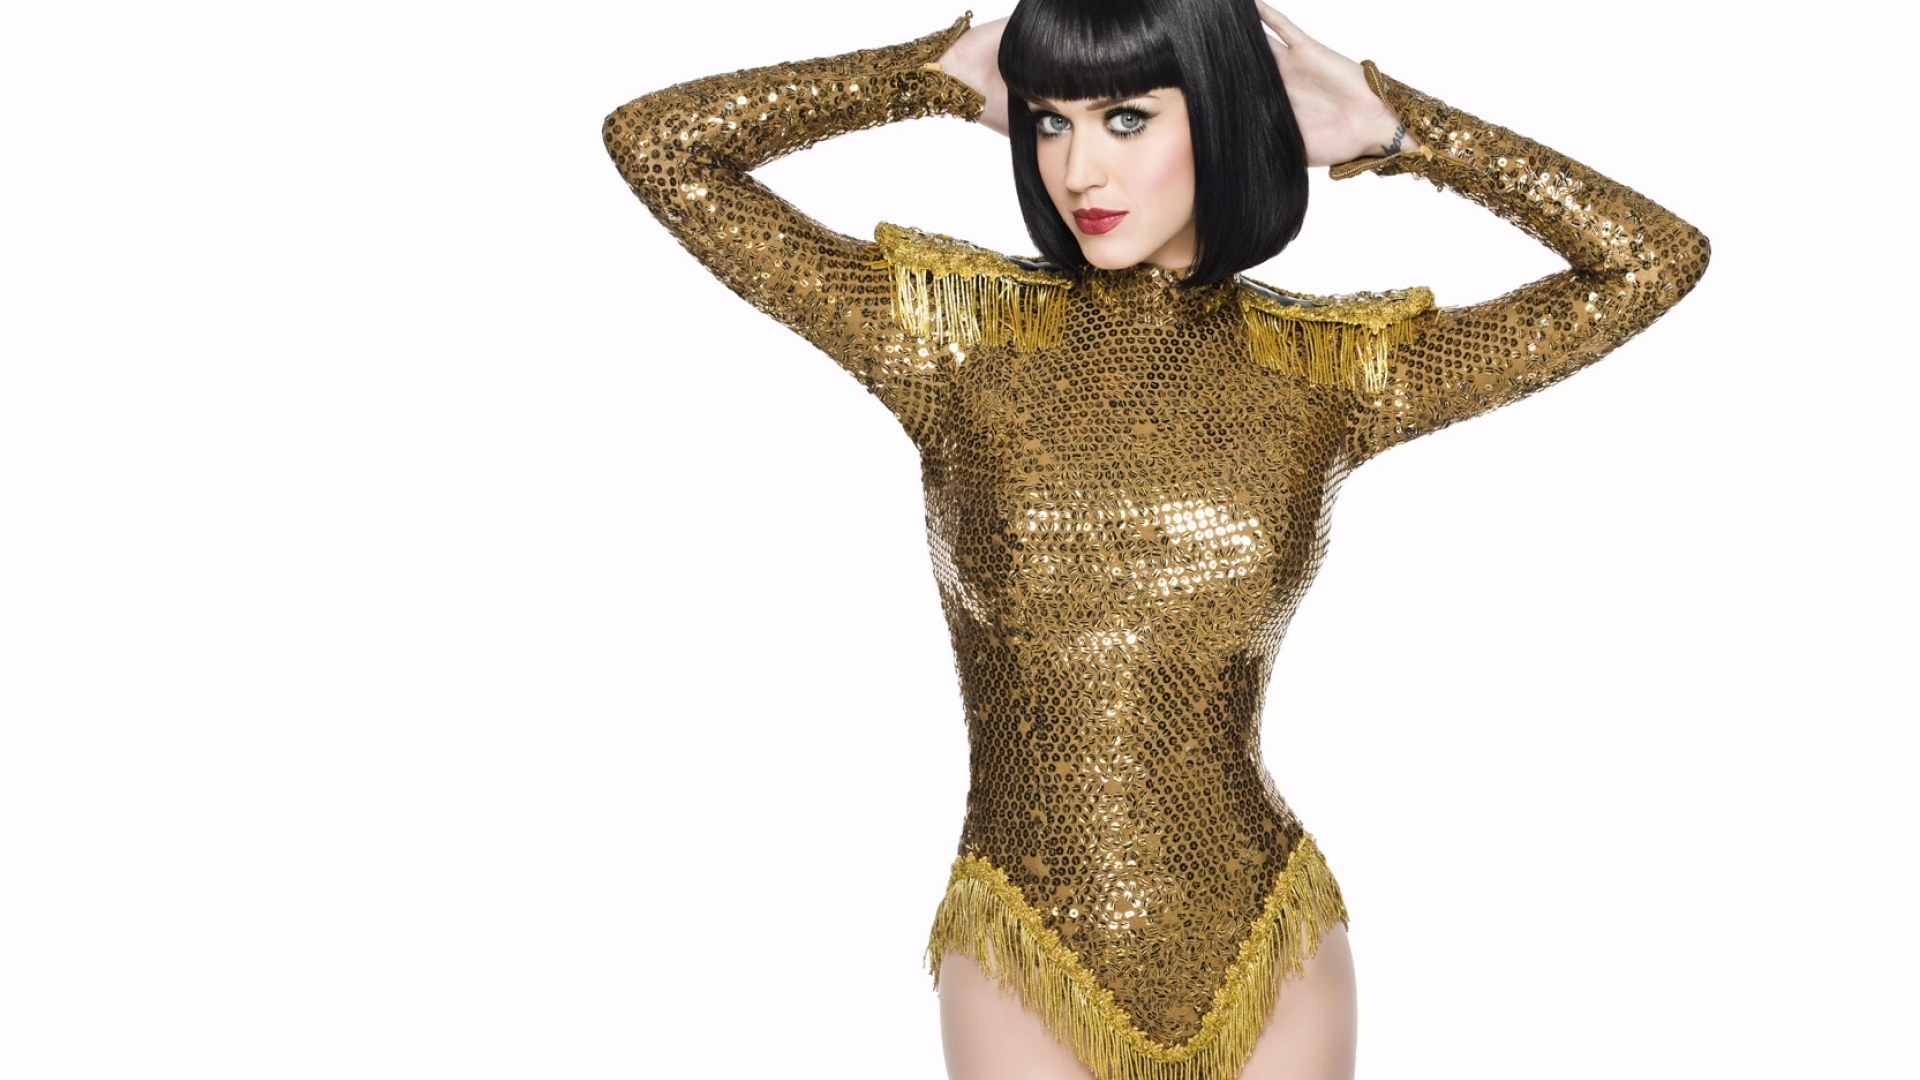 Katy Perry glittery wallpaper